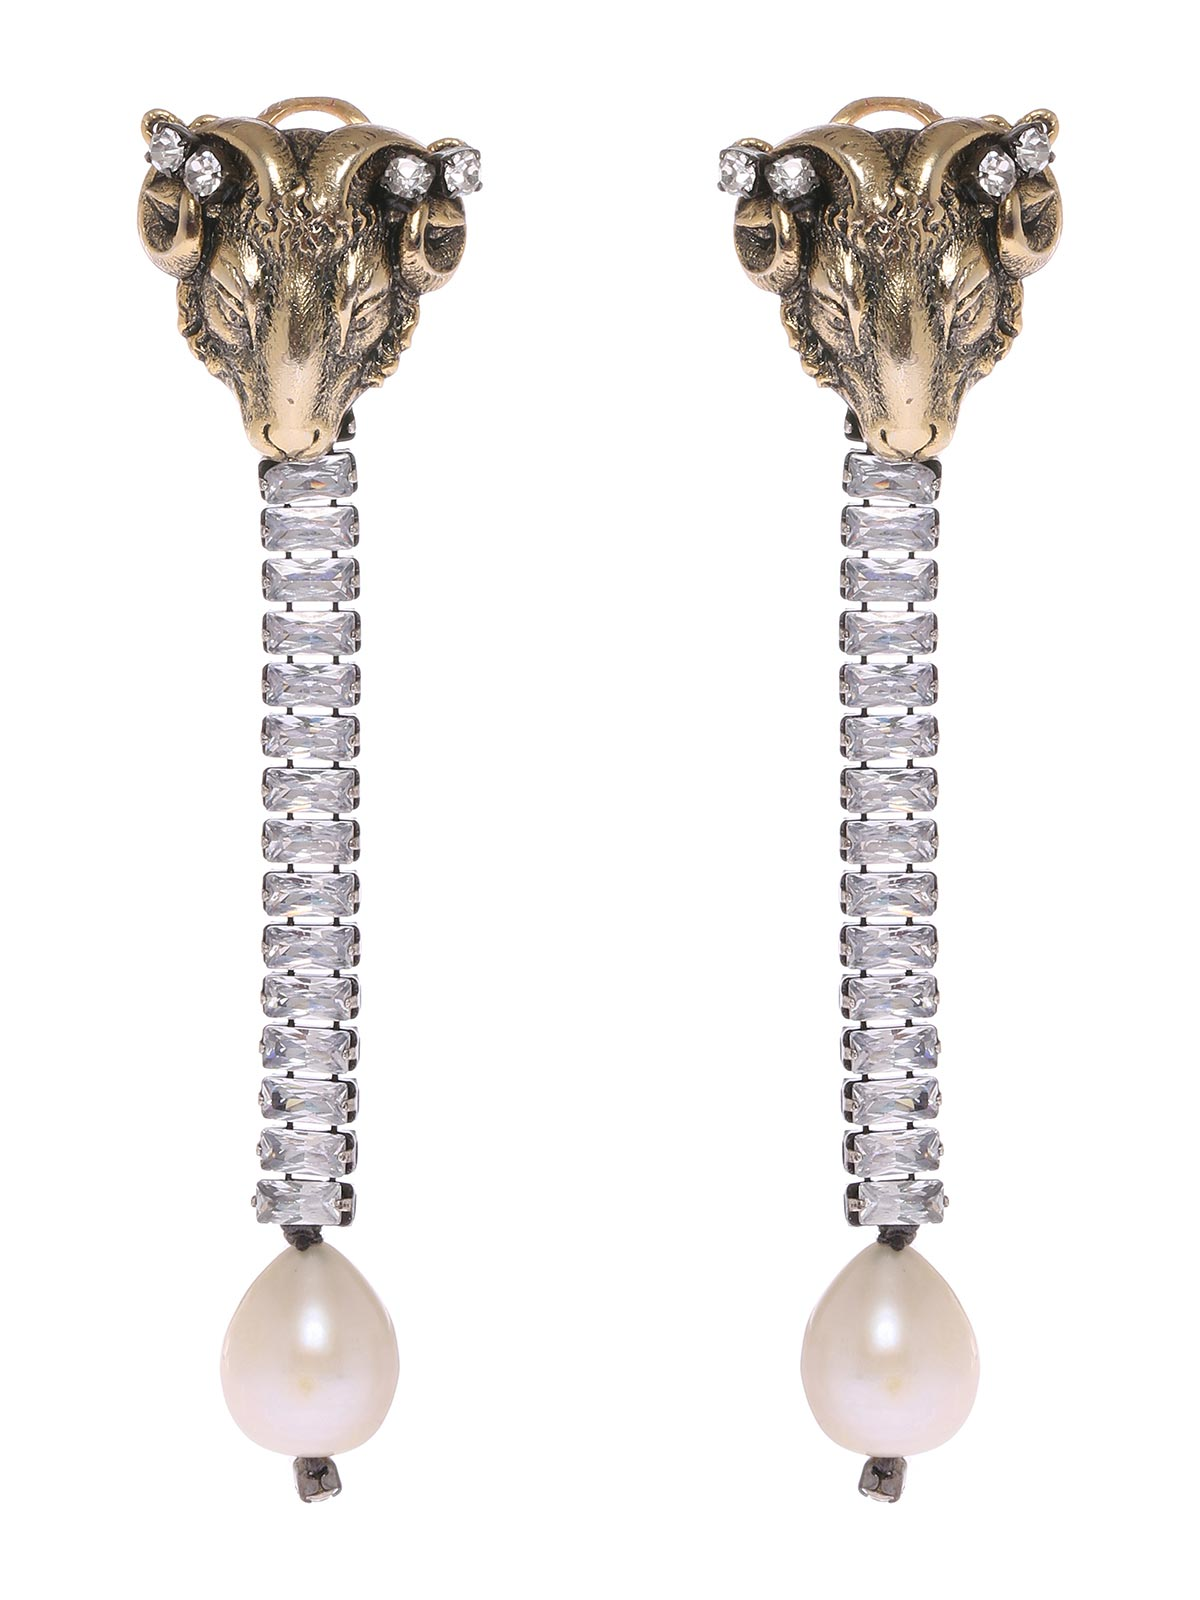 Aries earrings with pendent crystals and pearl